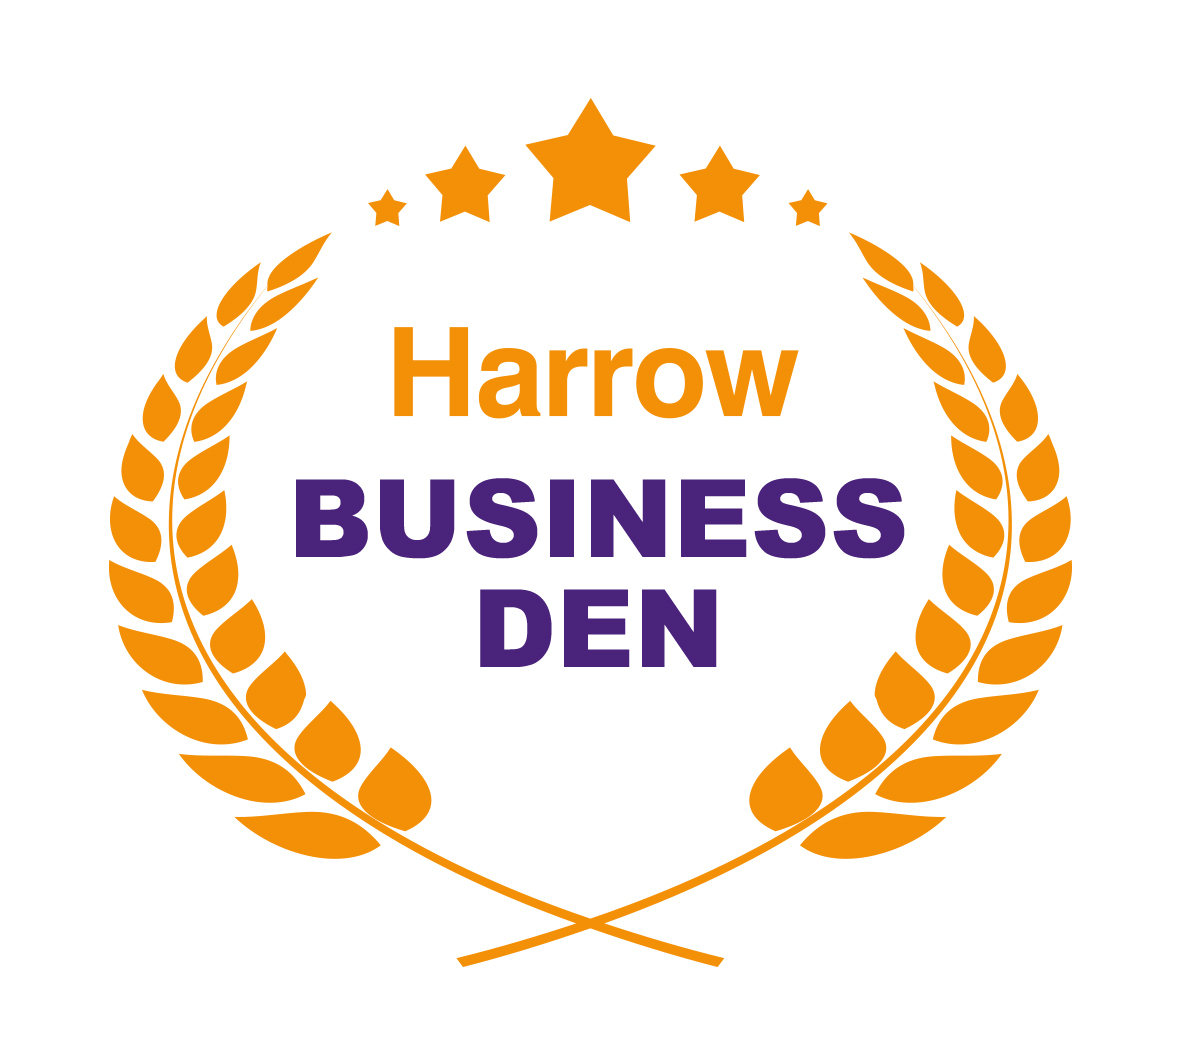 Harrow firms have until Monday to enter the Business Den competition, and win vital advice and support